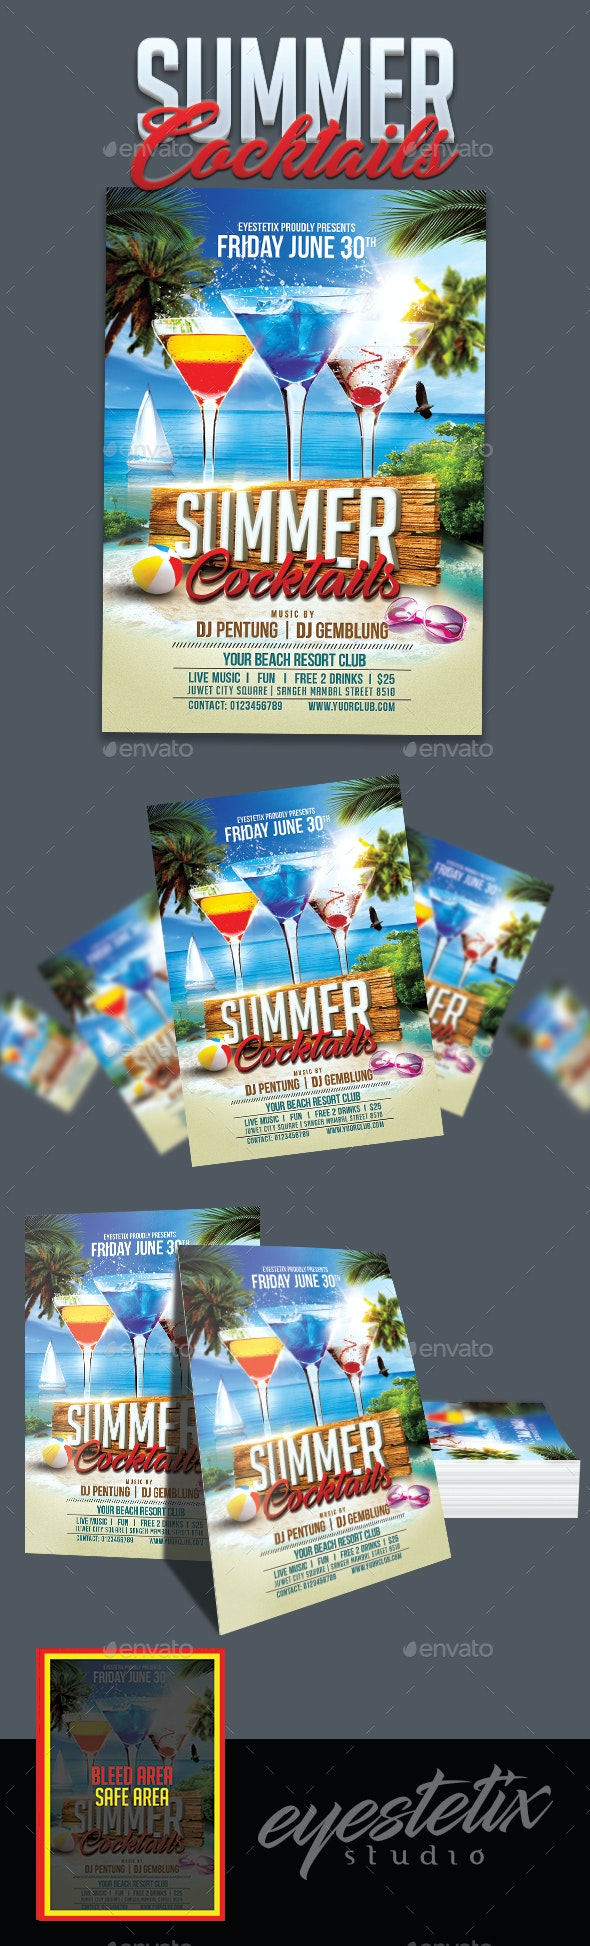 Summer Cocktails Party Flyer - Clubs & Parties Events